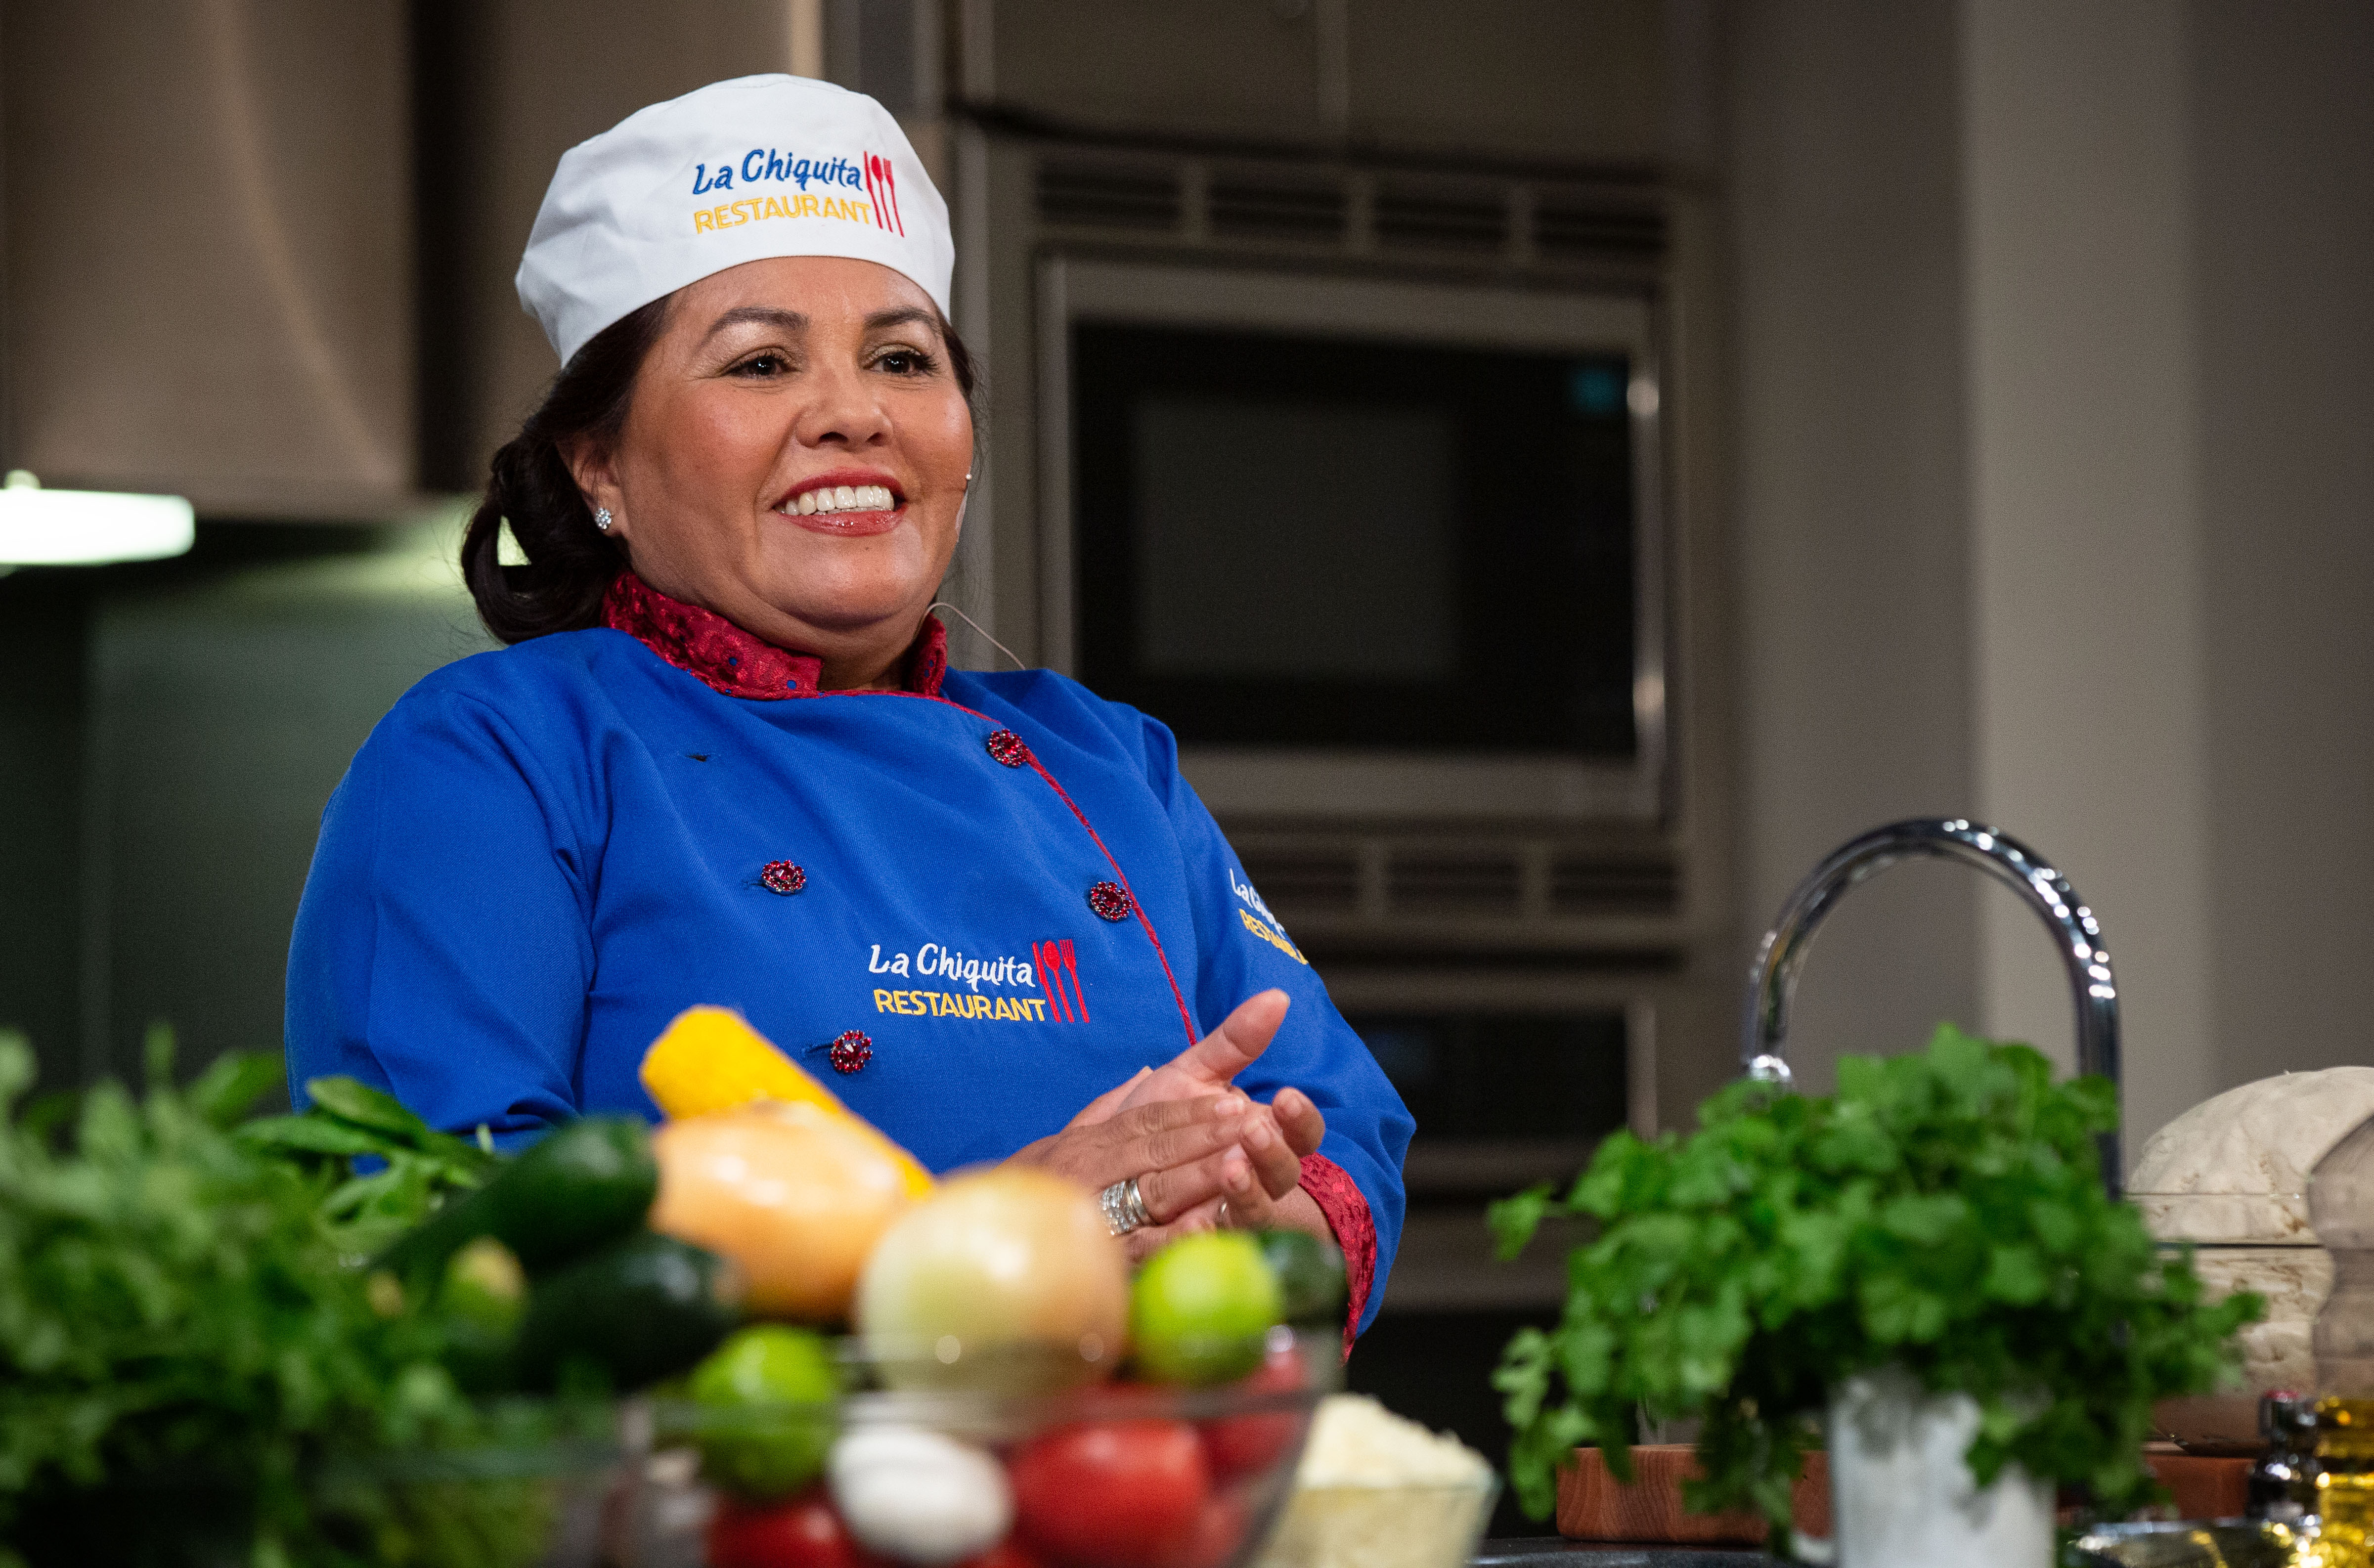 Dora Escobar During Cooking Up History at 2019 Smithsonian Food History Weekend